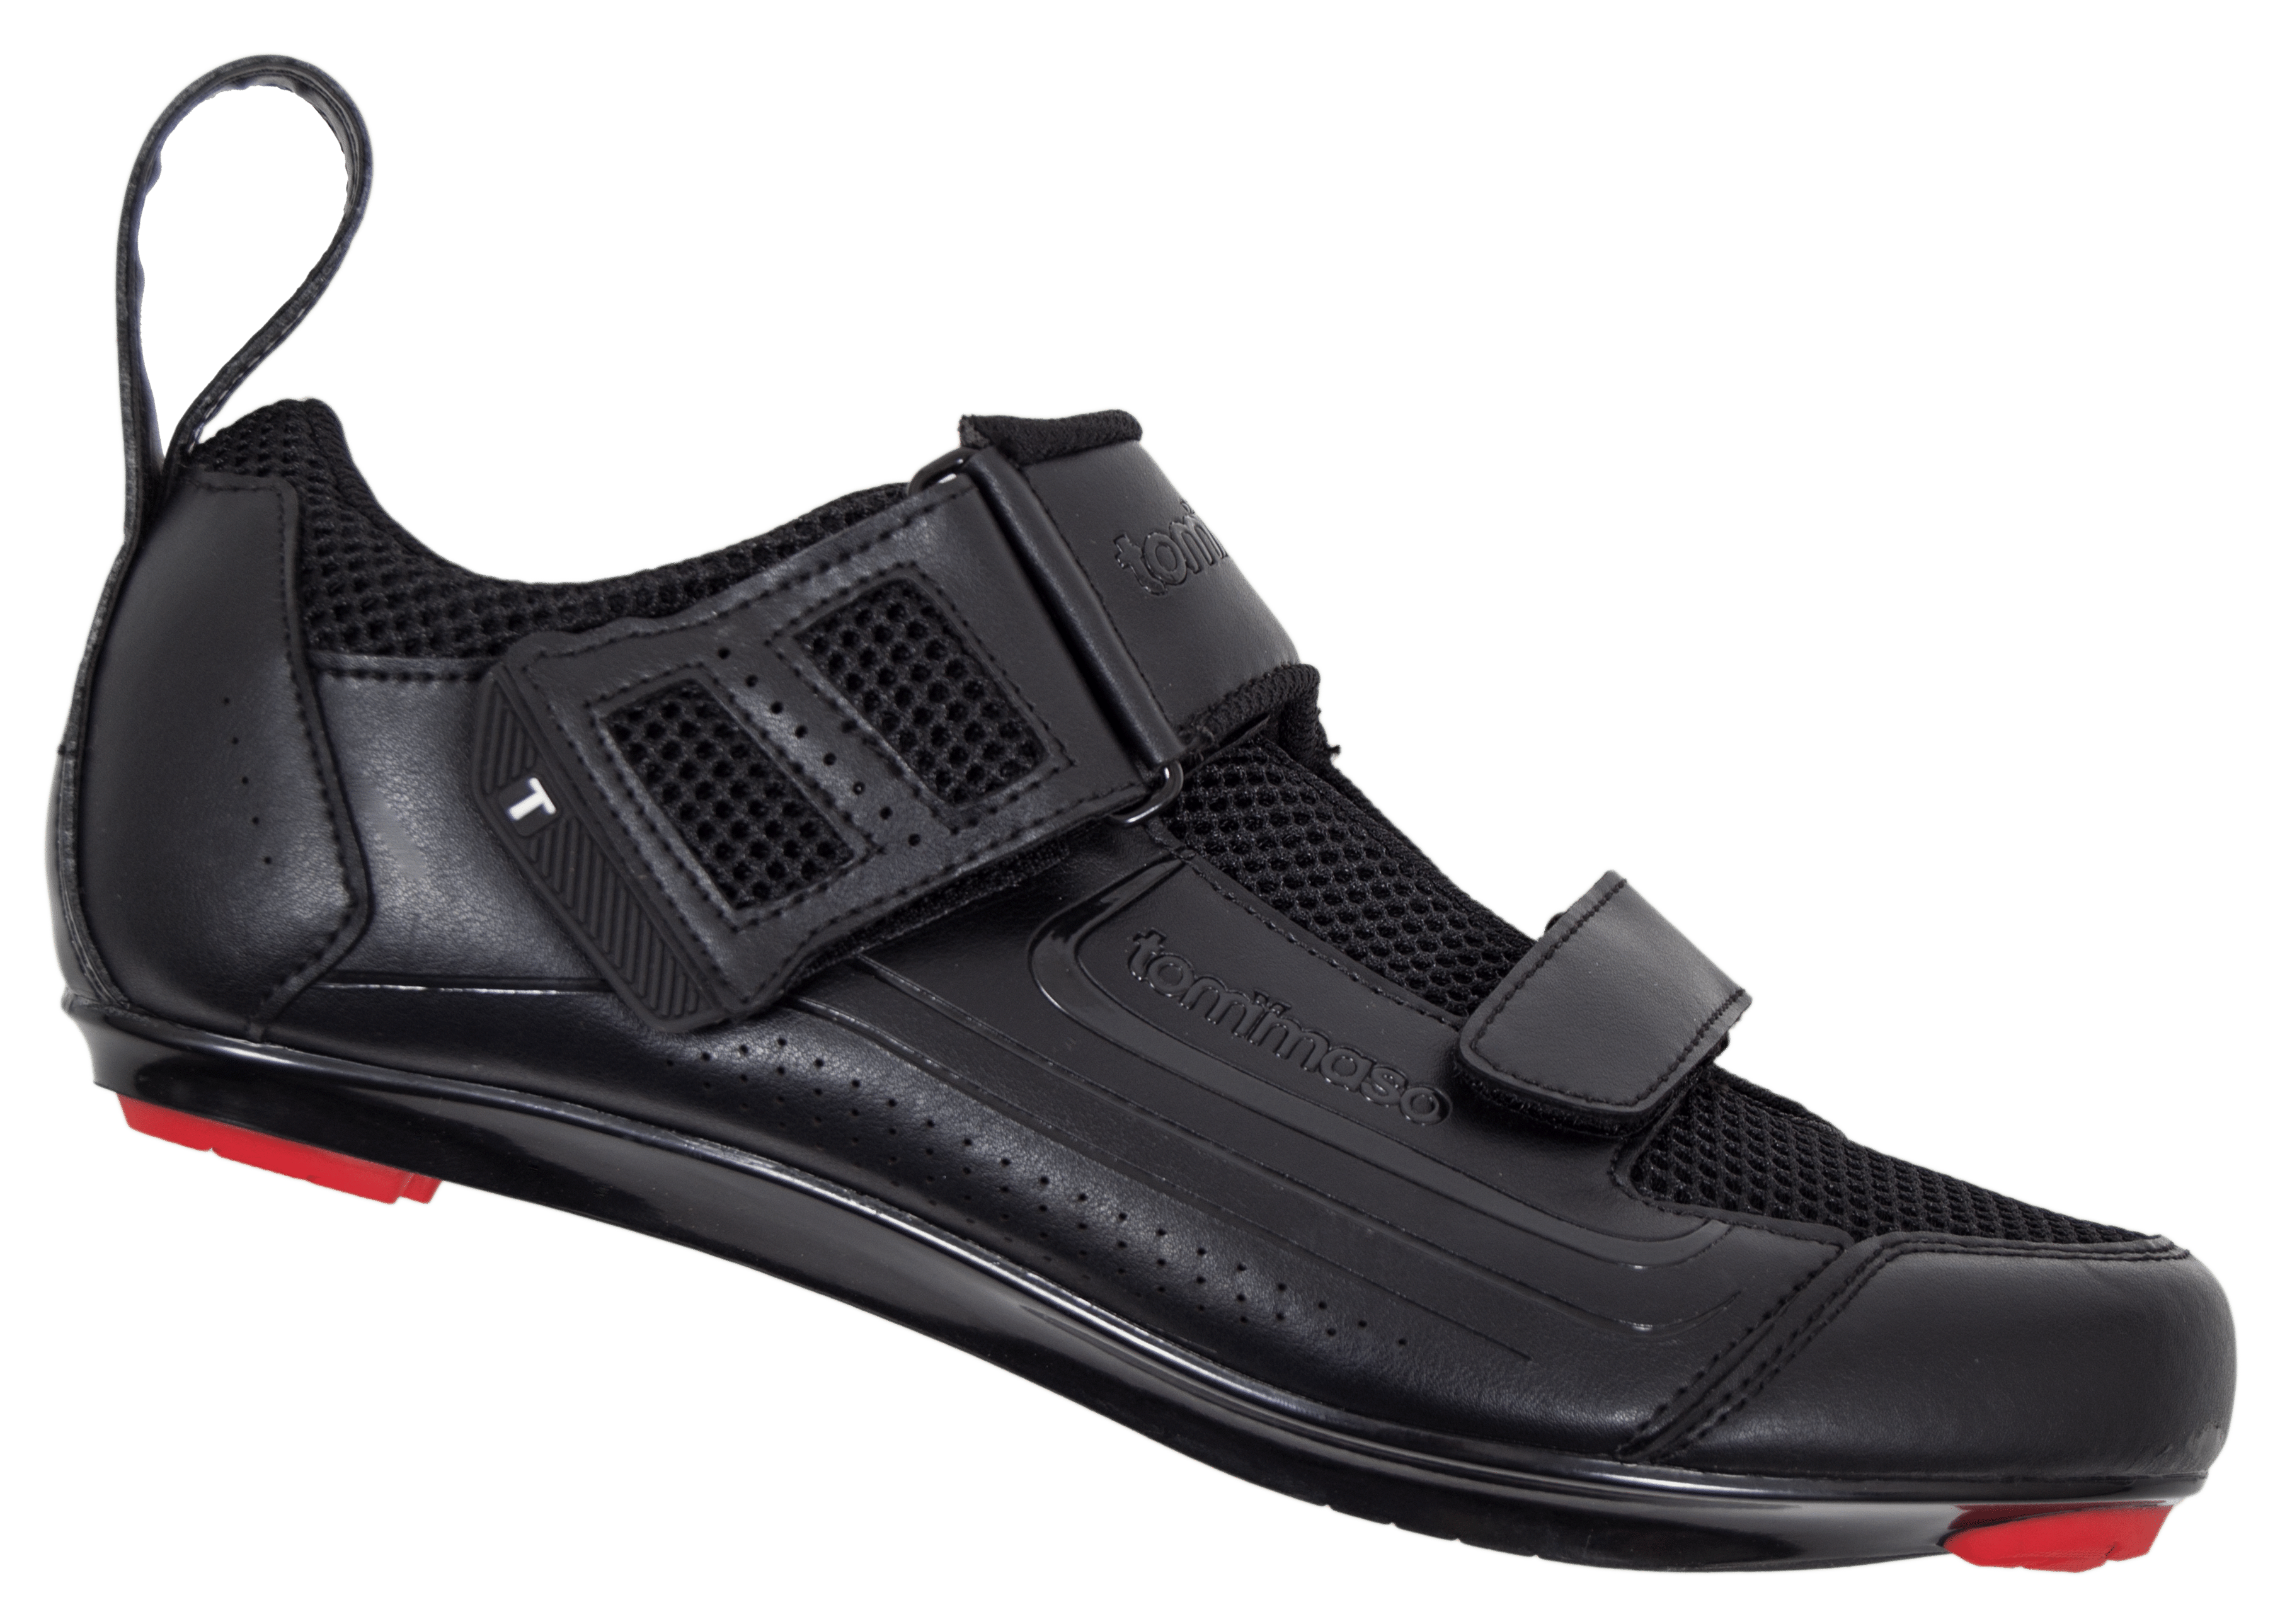 15 Best Cycling Shoes and Pedals of 2018 - Buying Guide and Reviews 37